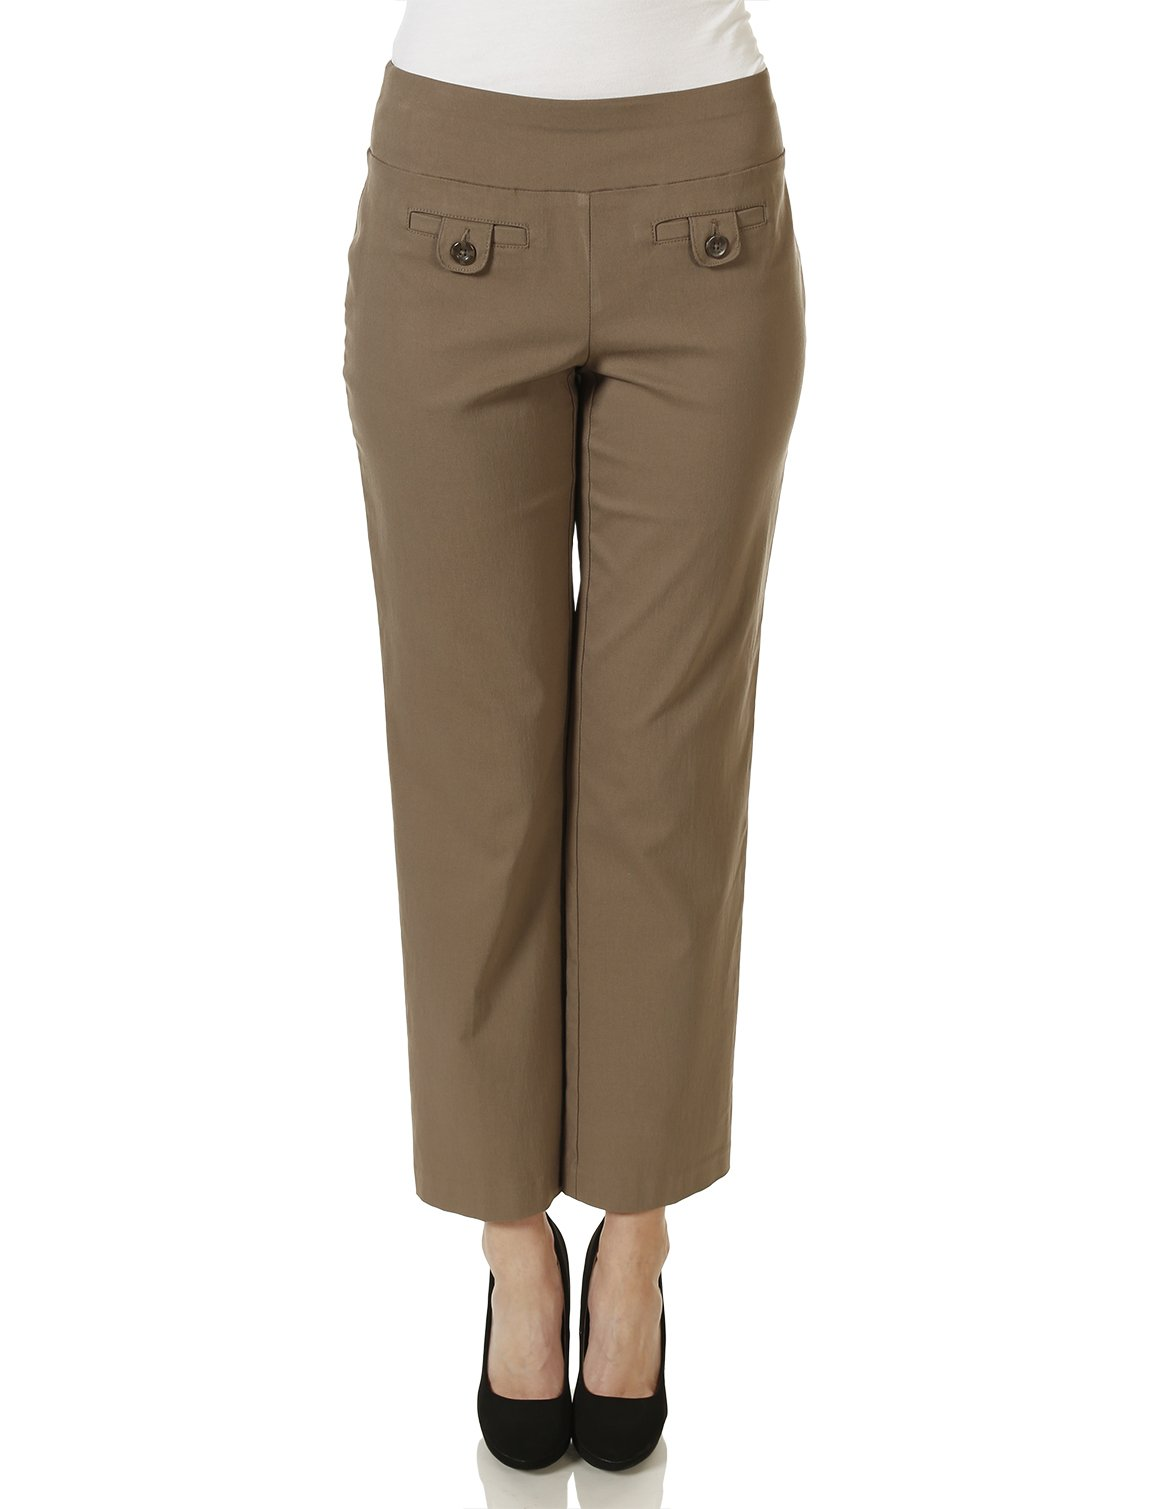 Style & Co. Straight-Leg Pants Mocha Medium